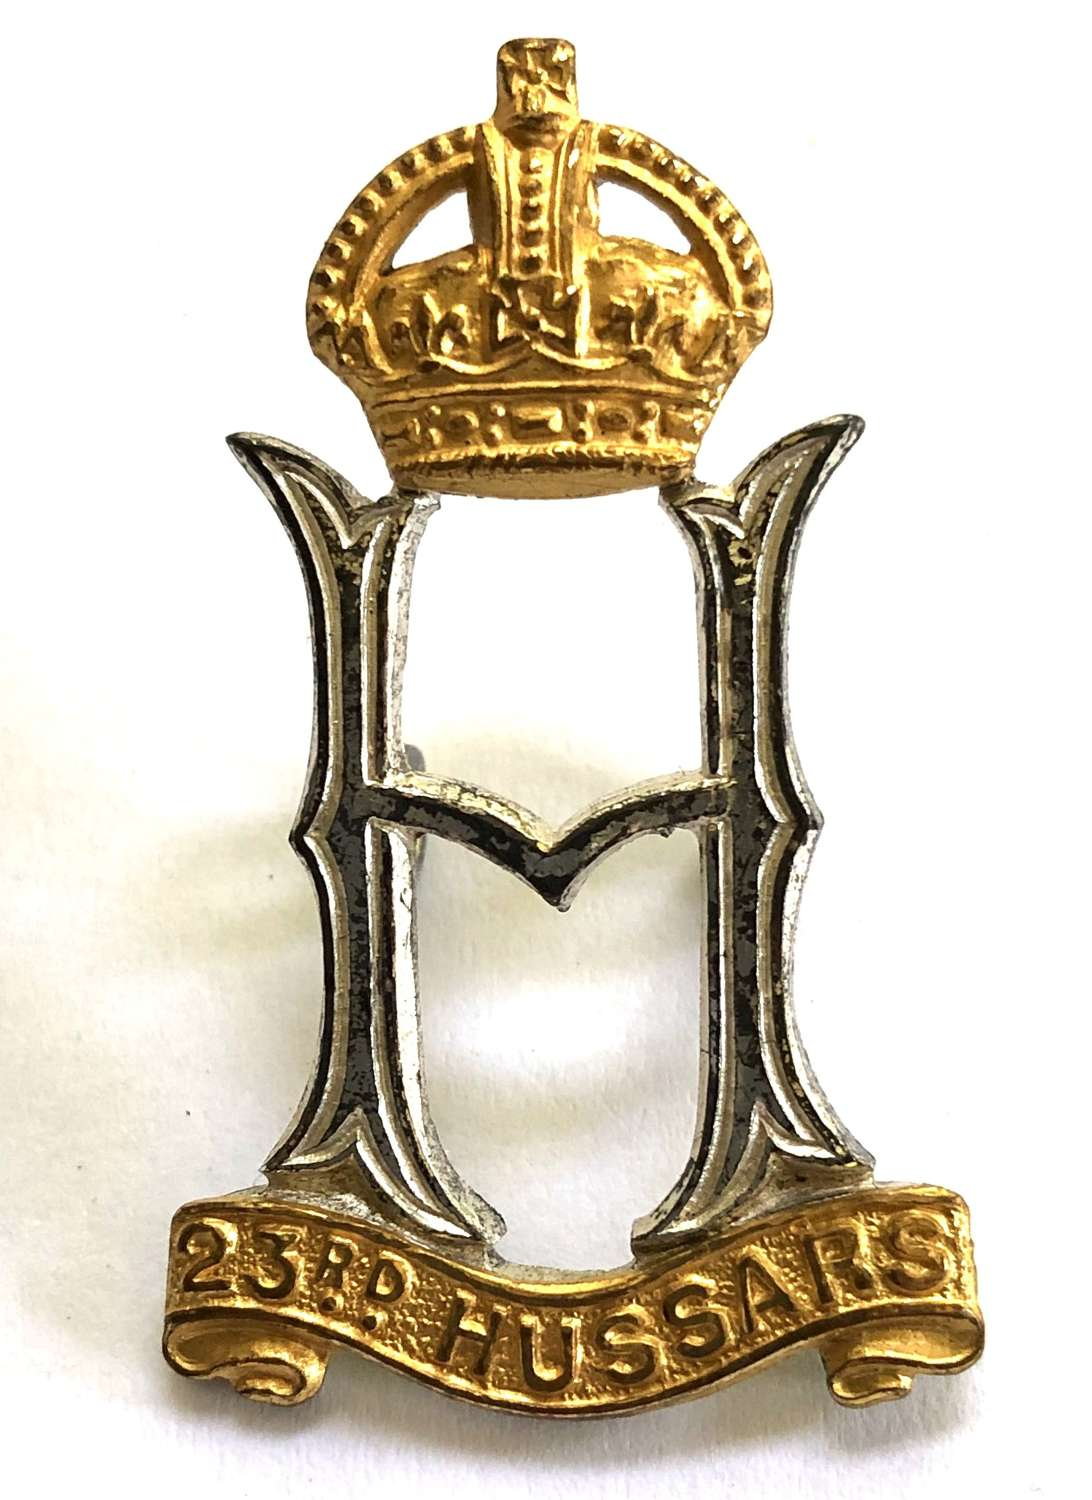 23rd Hussars war raised Officer's cap badge circa 1940-46.